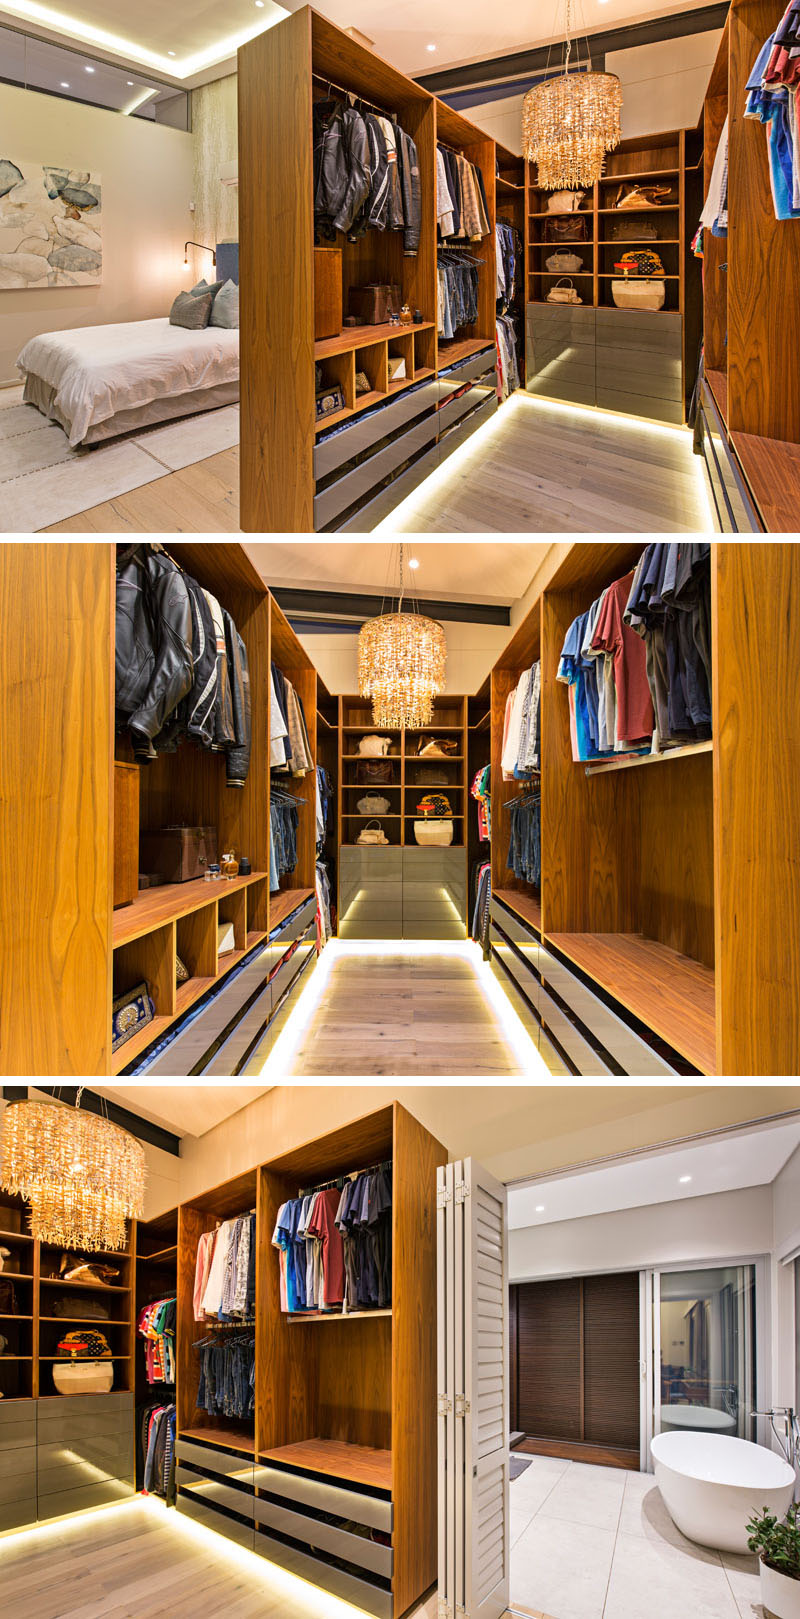 This all wood, modern walk-in closet separates the master bedroom from the ensuite bathroom. A unique textured chandelier centres the closet, while hidden lighting on the floor adds a warm glow.